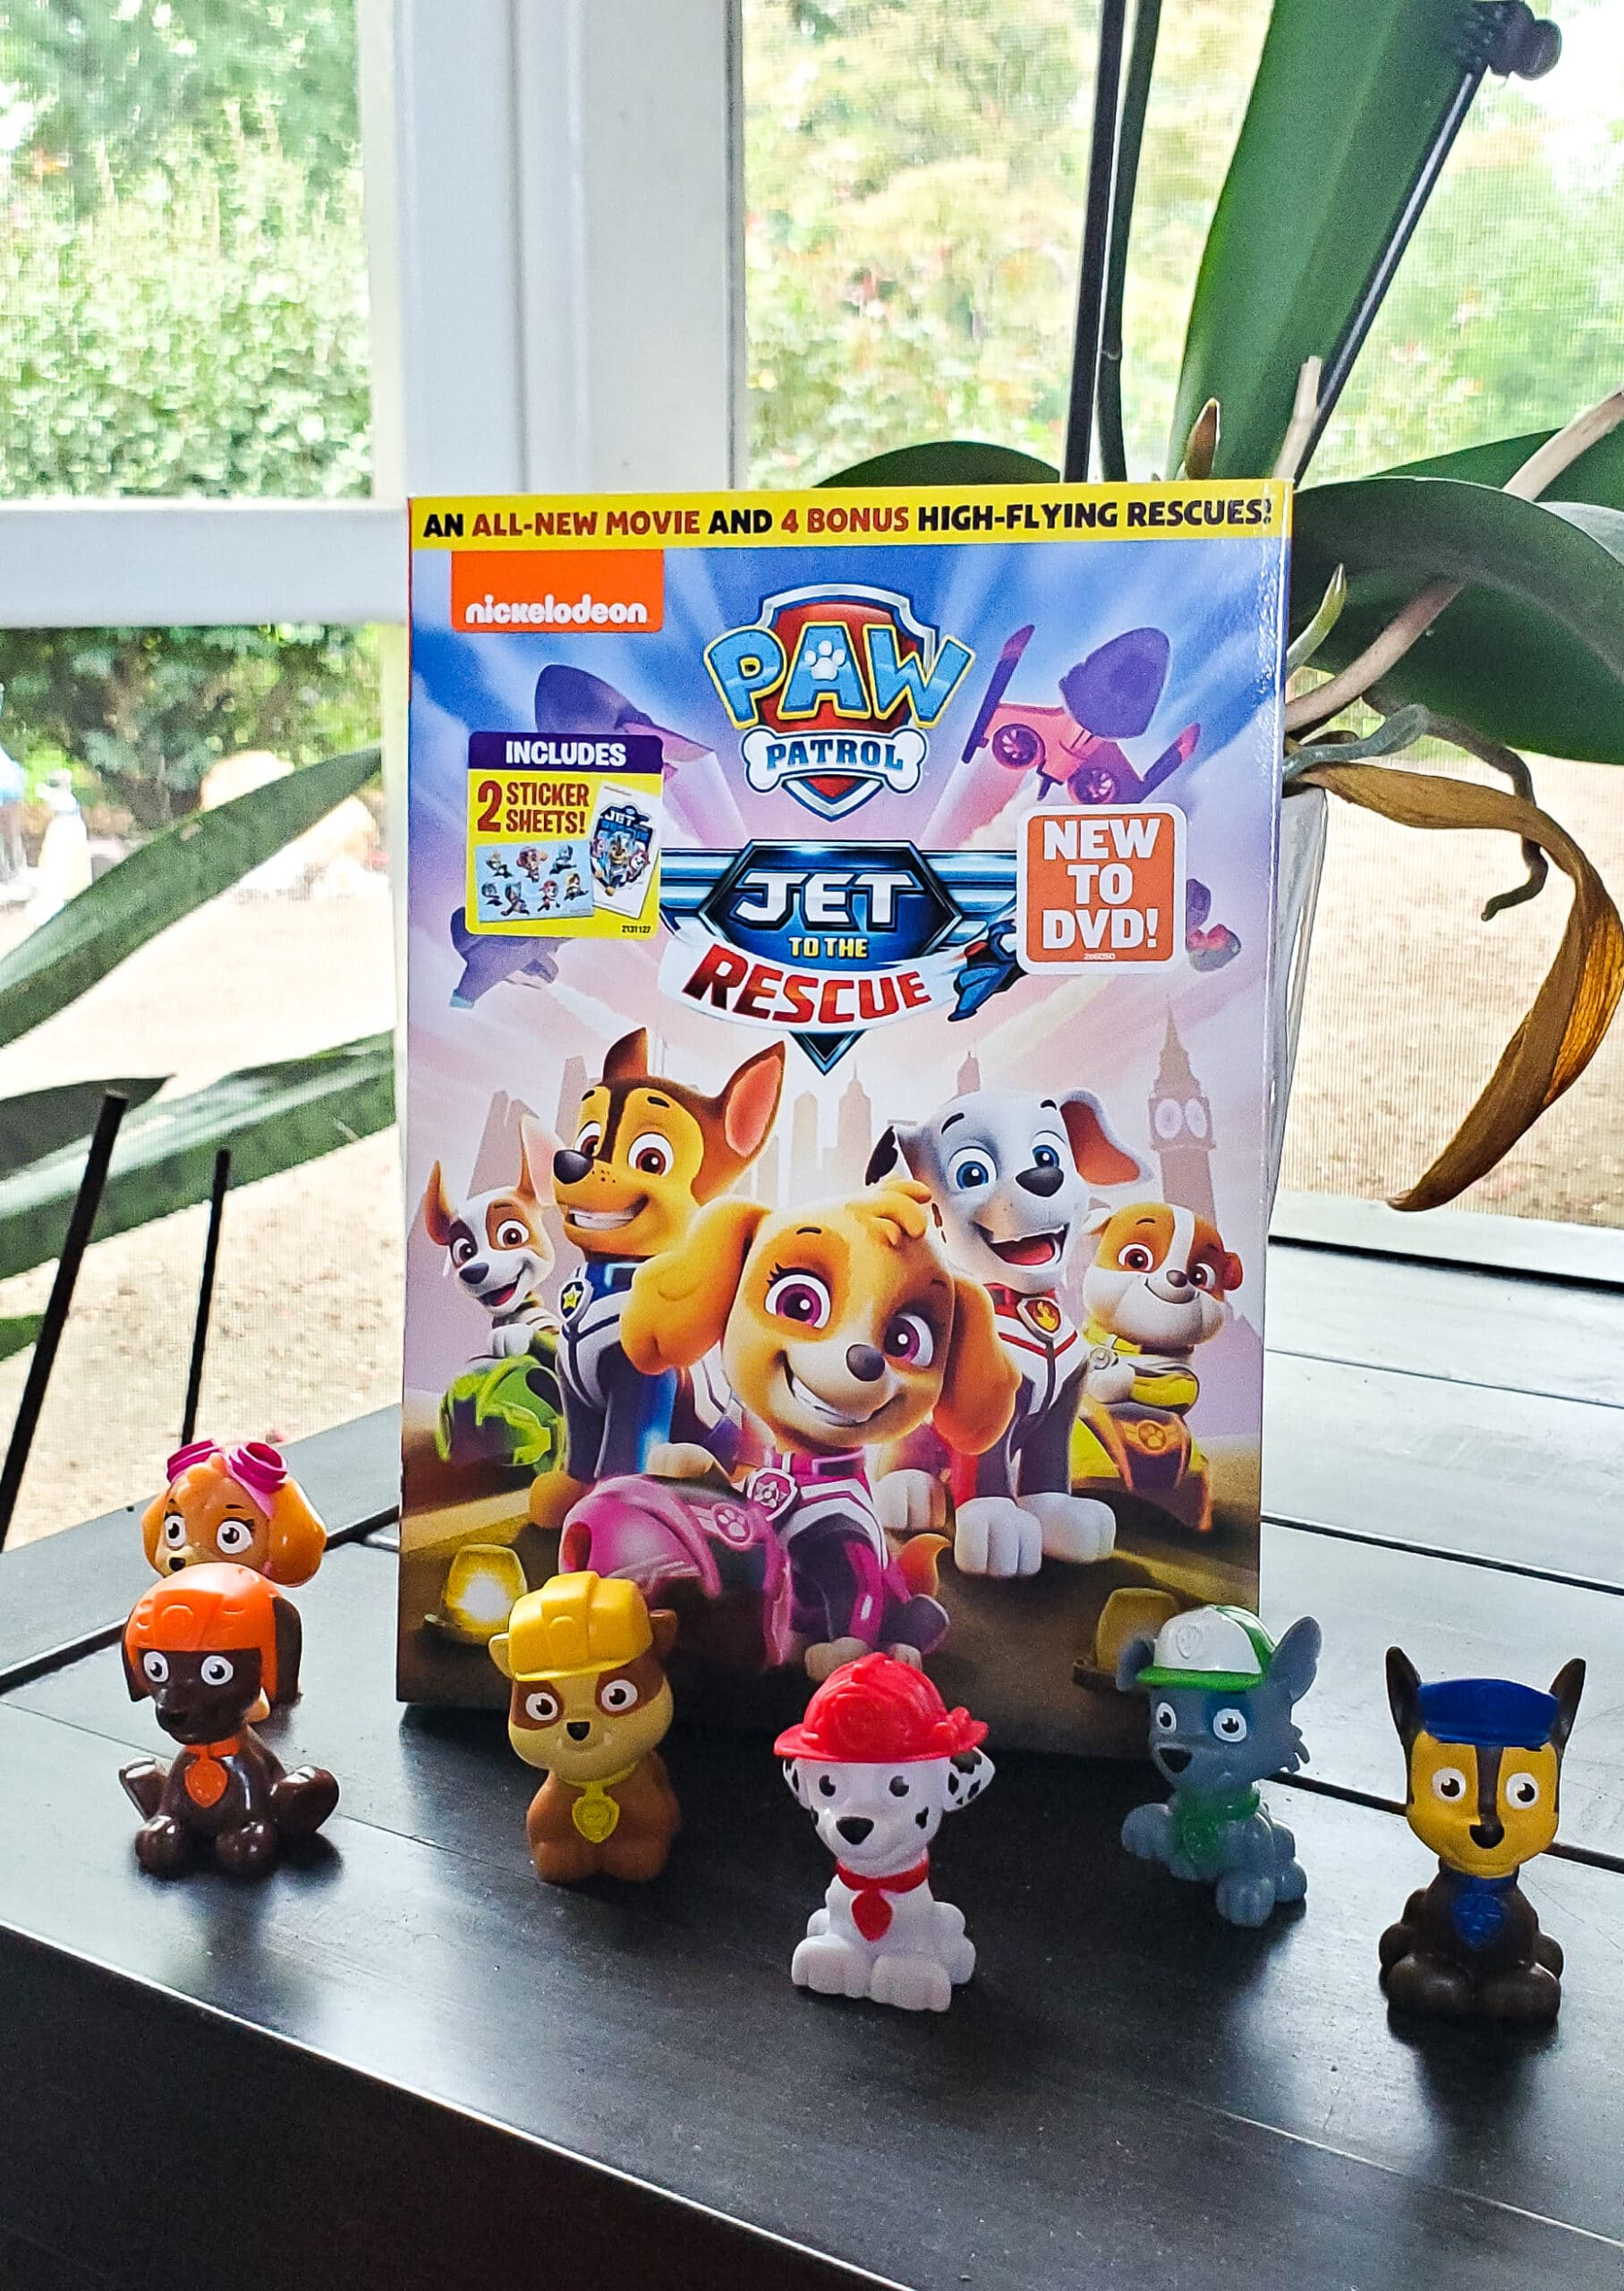 PAW Patrol Jet to the Rescue DVD Giveaway. Get ready for high-flying adventures with the PAW Patrol pups in the brand-new DVD PAW Patrol: Jet to the Rescue. Featuring an exclusive, all-new original TV movie and four fan-favorite episodes from the number-one ranked preschool show on television. Enter to win your very own PAW Patrol: Jet to the Rescue DVD in my special giveaway on my blog.